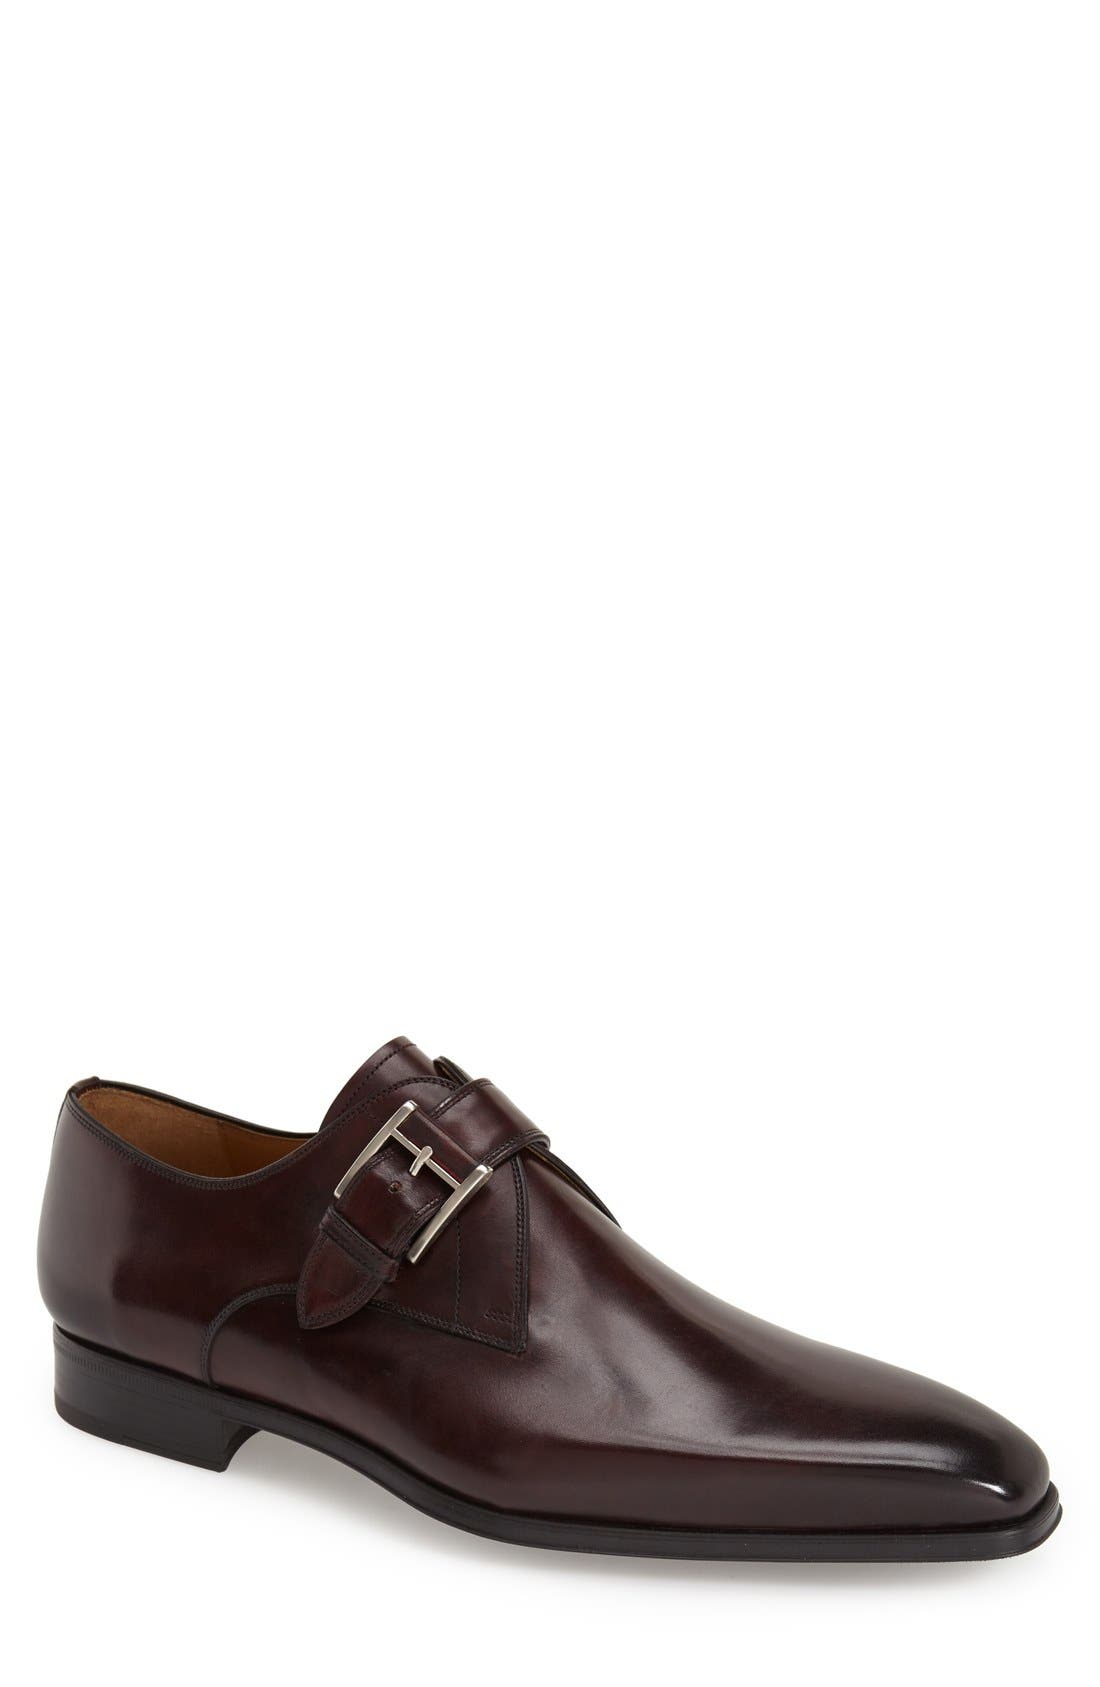 'Hugo' Monk Strap Slip-On,                             Main thumbnail 1, color,                             Burgundy